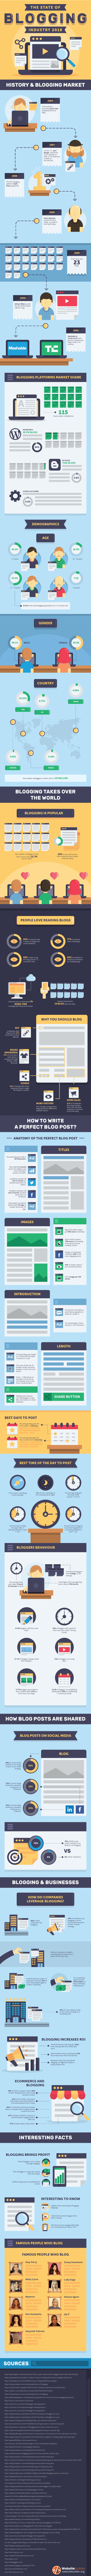 history of blogging infographic